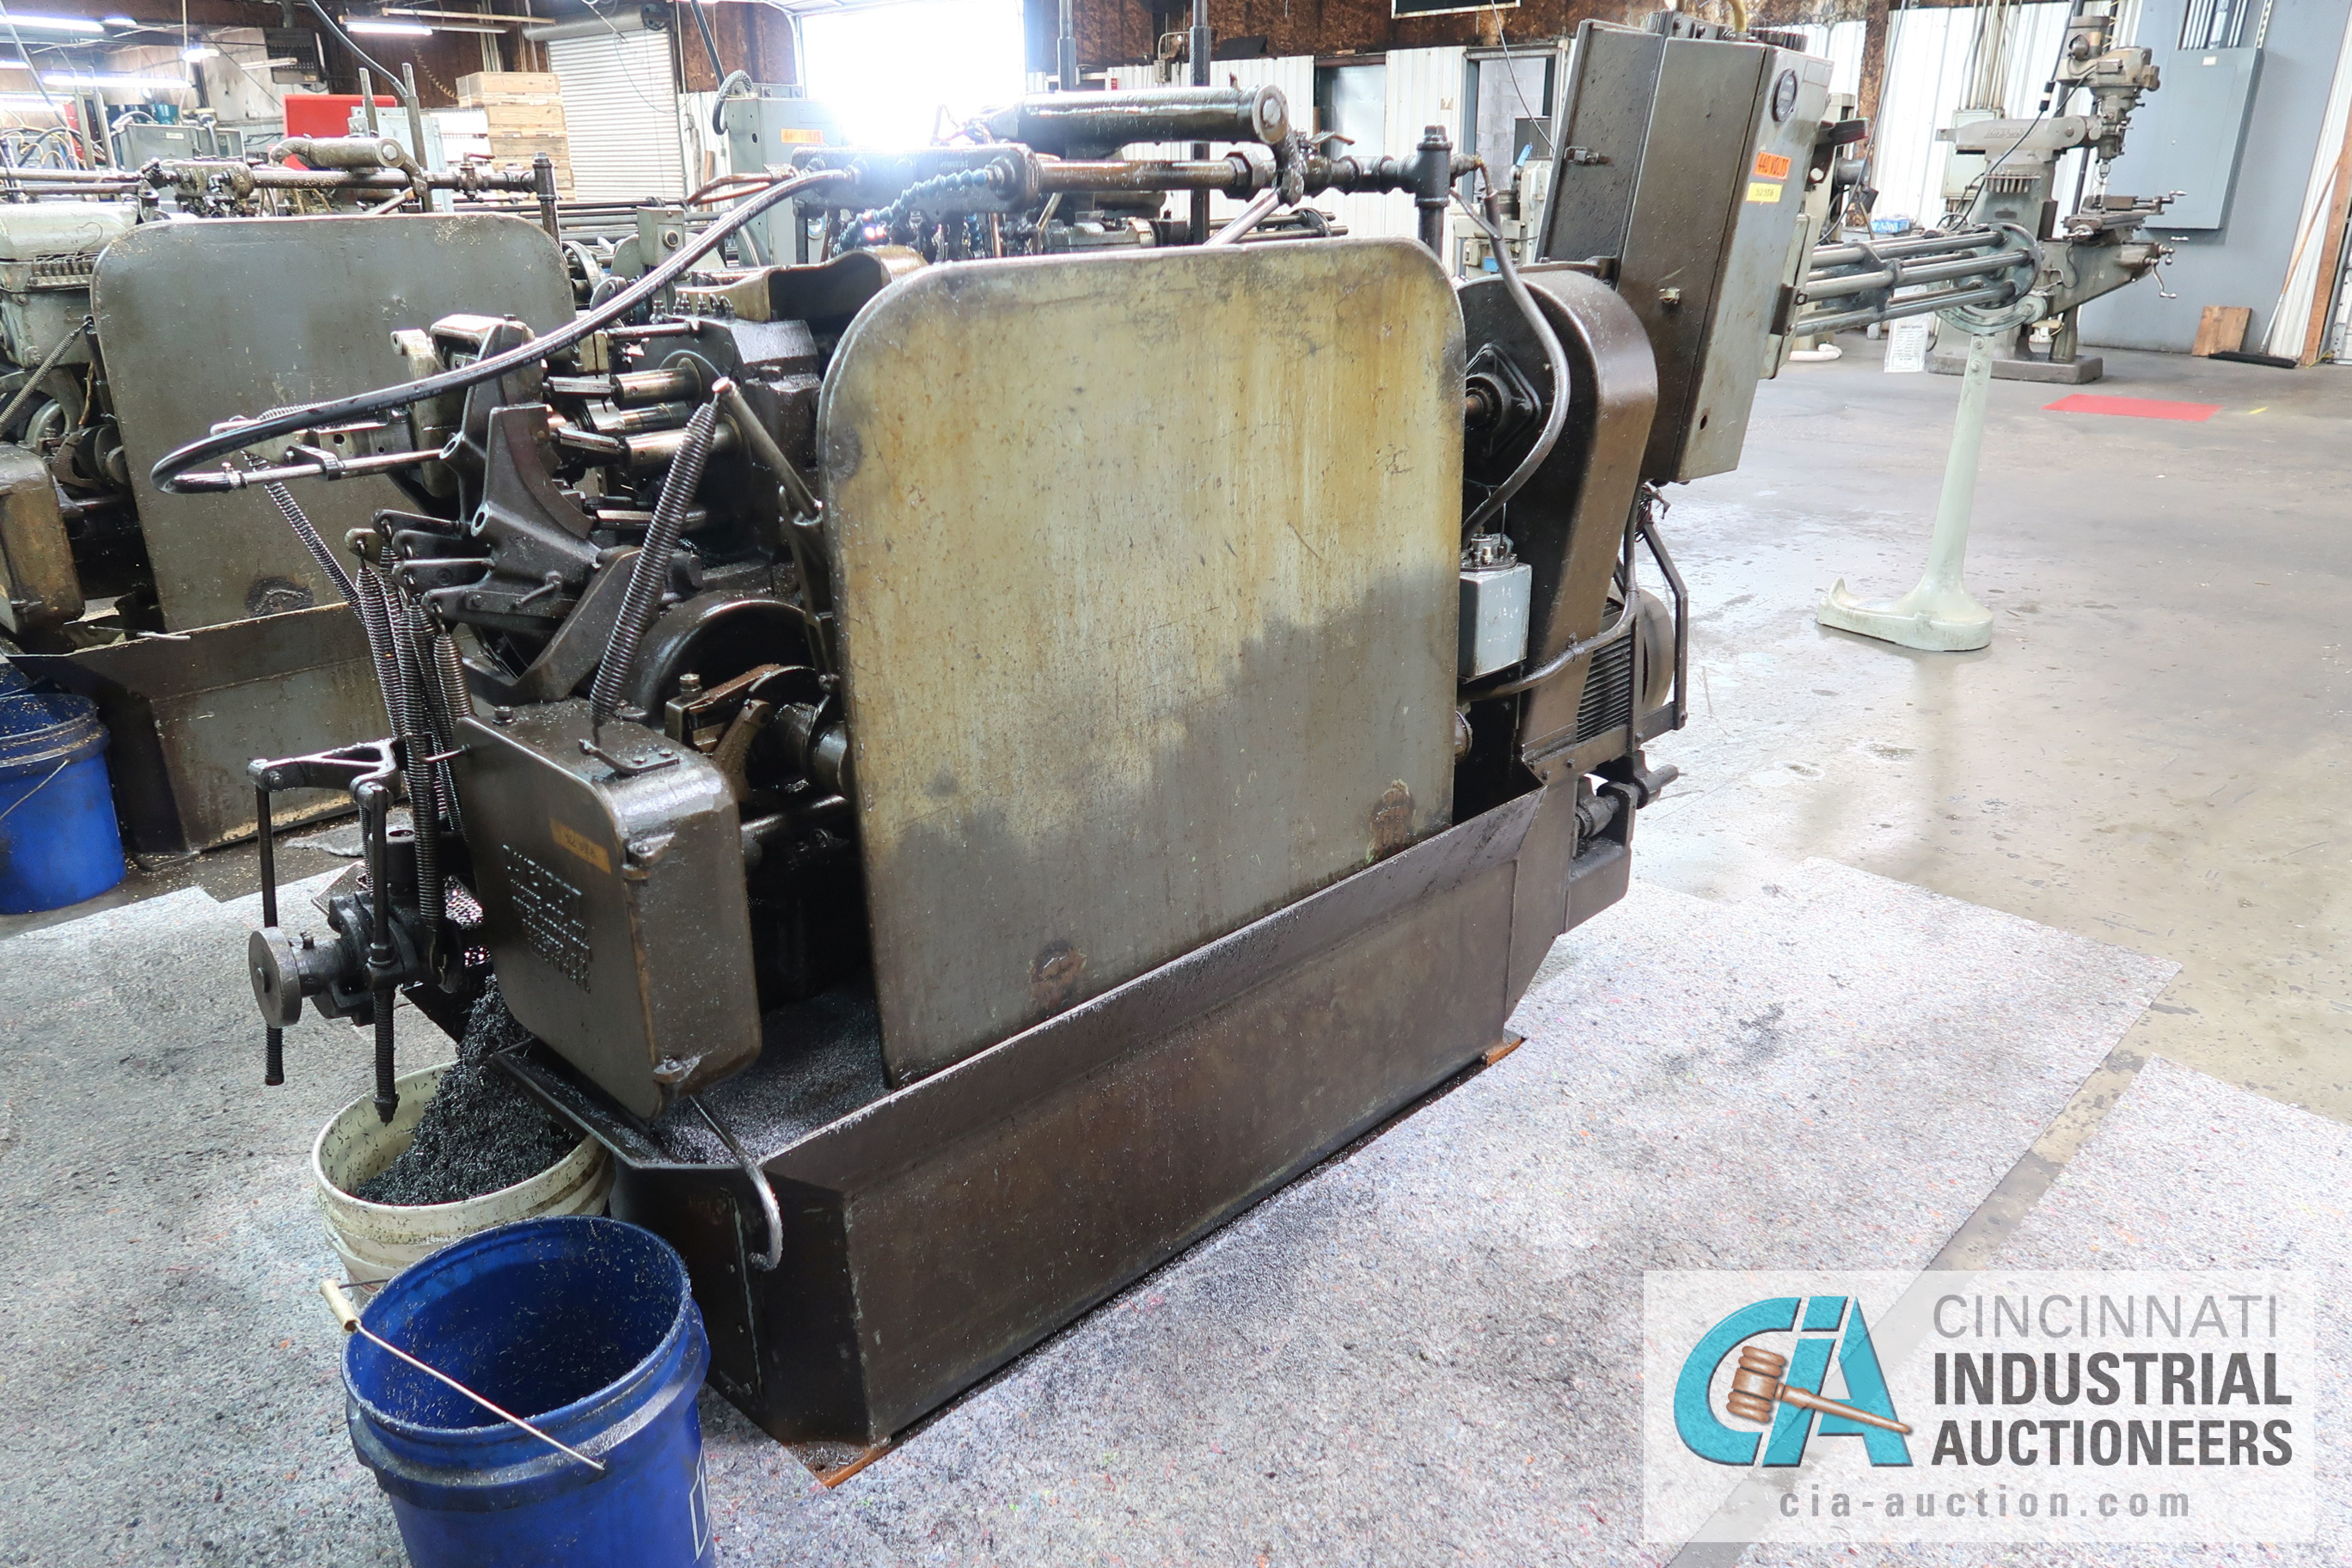 """3/4"""" DAVENPORT 5-SPINDLE SCREW MACHINE; S/N 11002 (NEW 11-1981) WITH 4TH POS. THREAD ROLL, PICK OFF, - Image 3 of 4"""